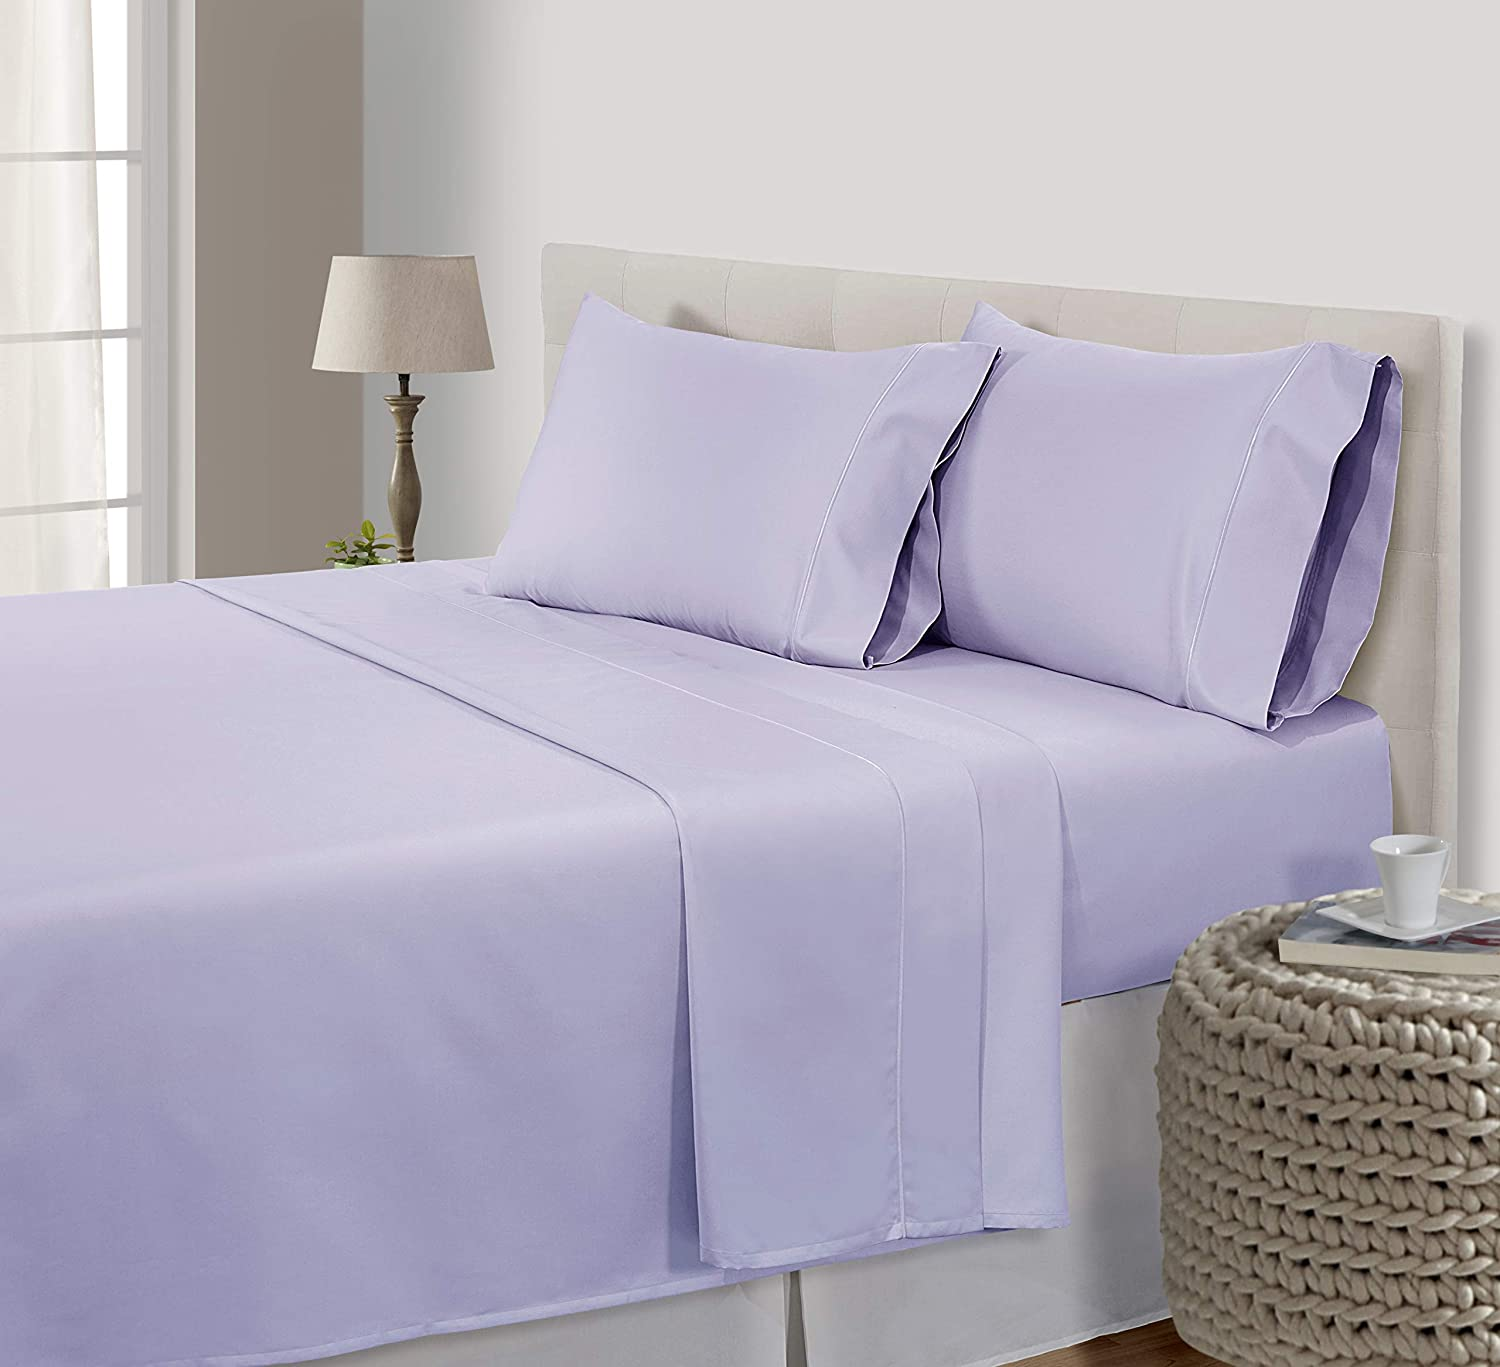 CHATEAU HOME COLLECTION Luxury 800 Thread-Count 100% Egyptian Cotton Bed Sheets,King-Pale Lavender Sheet Set,King Size Sheet Set, Sateen Weave,Fits Mattress Upto 18'' Deep Pocket,King Cotton Sheets